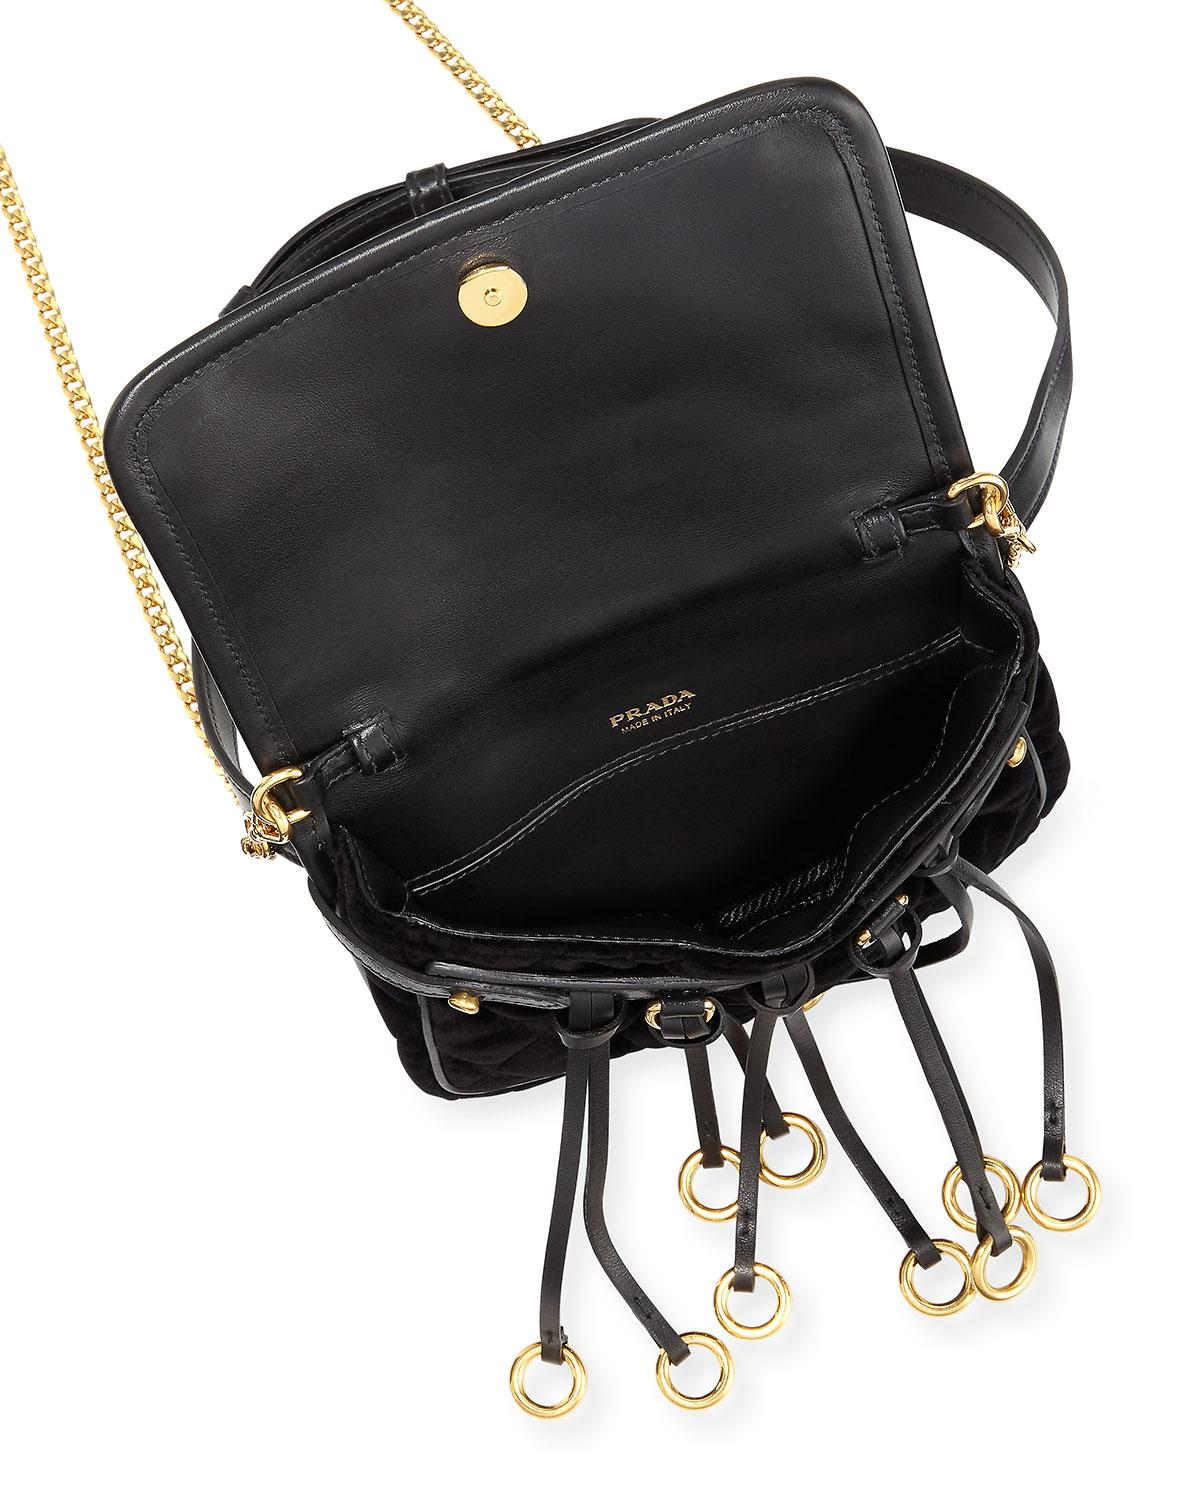 13e9bcafb2ab Prada Quilted Velvet Belt Bag & Crossbody Chain in Black - Lyst